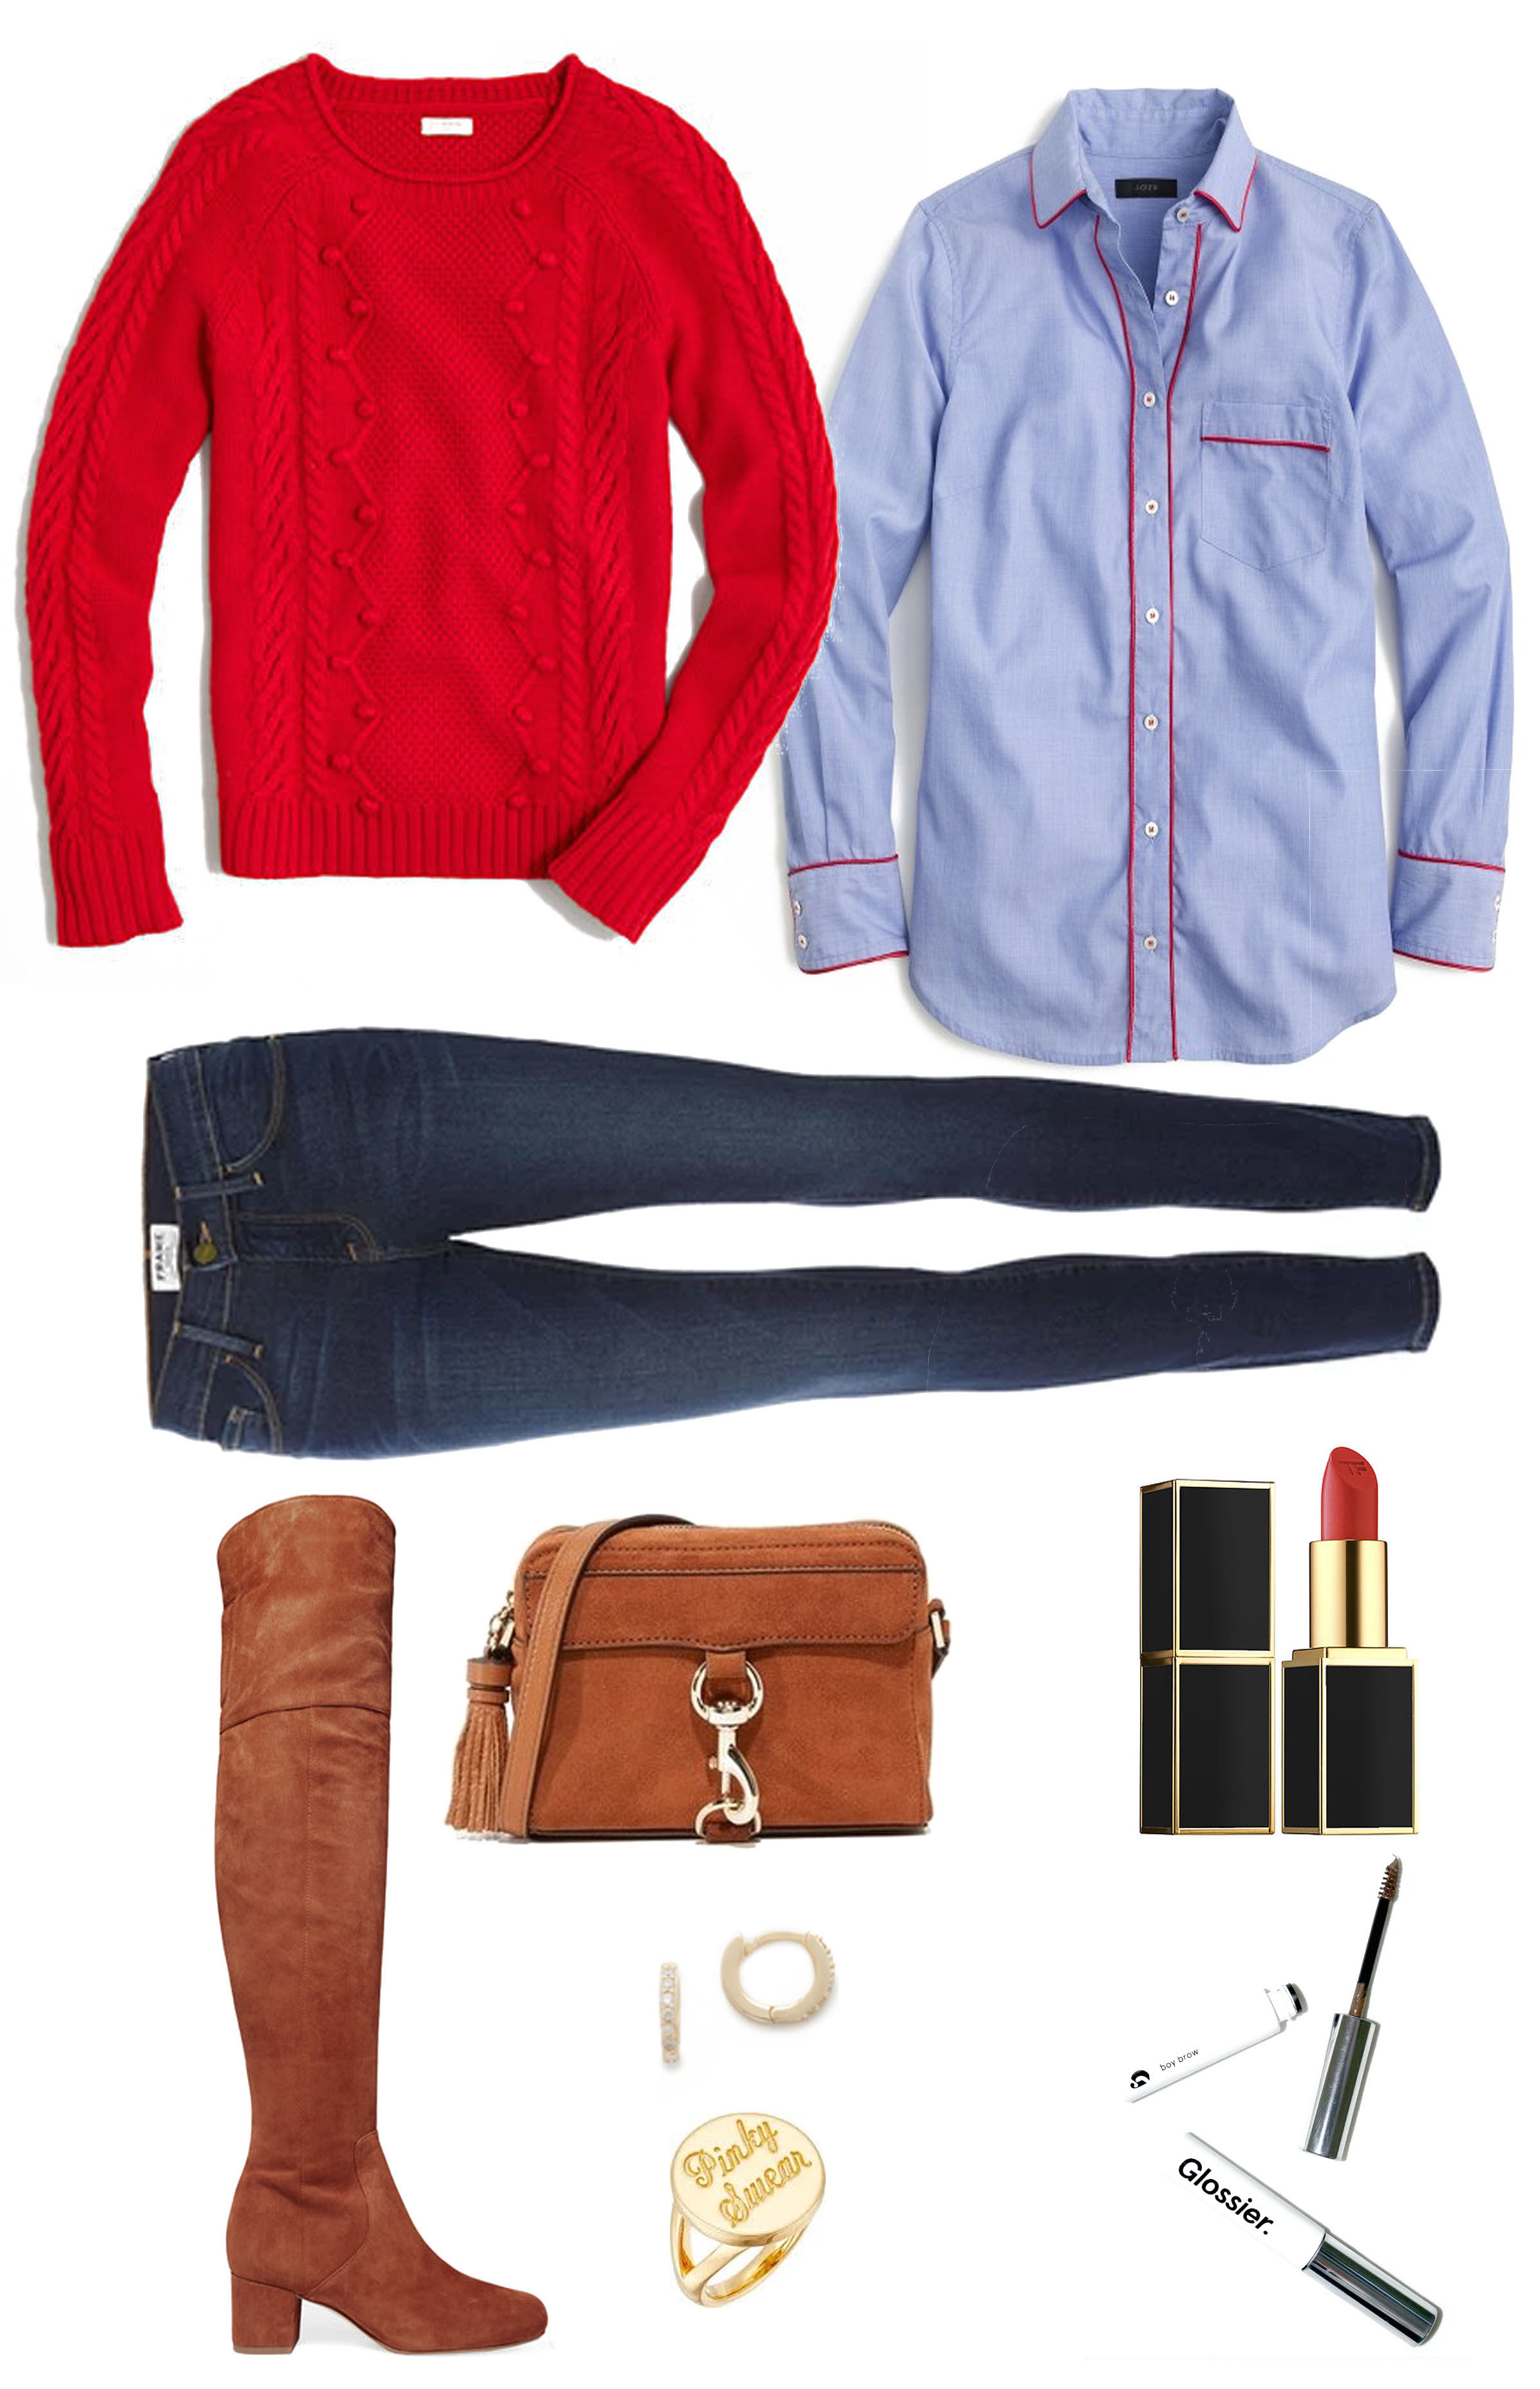 casual holiday outfit - jcrew sweater